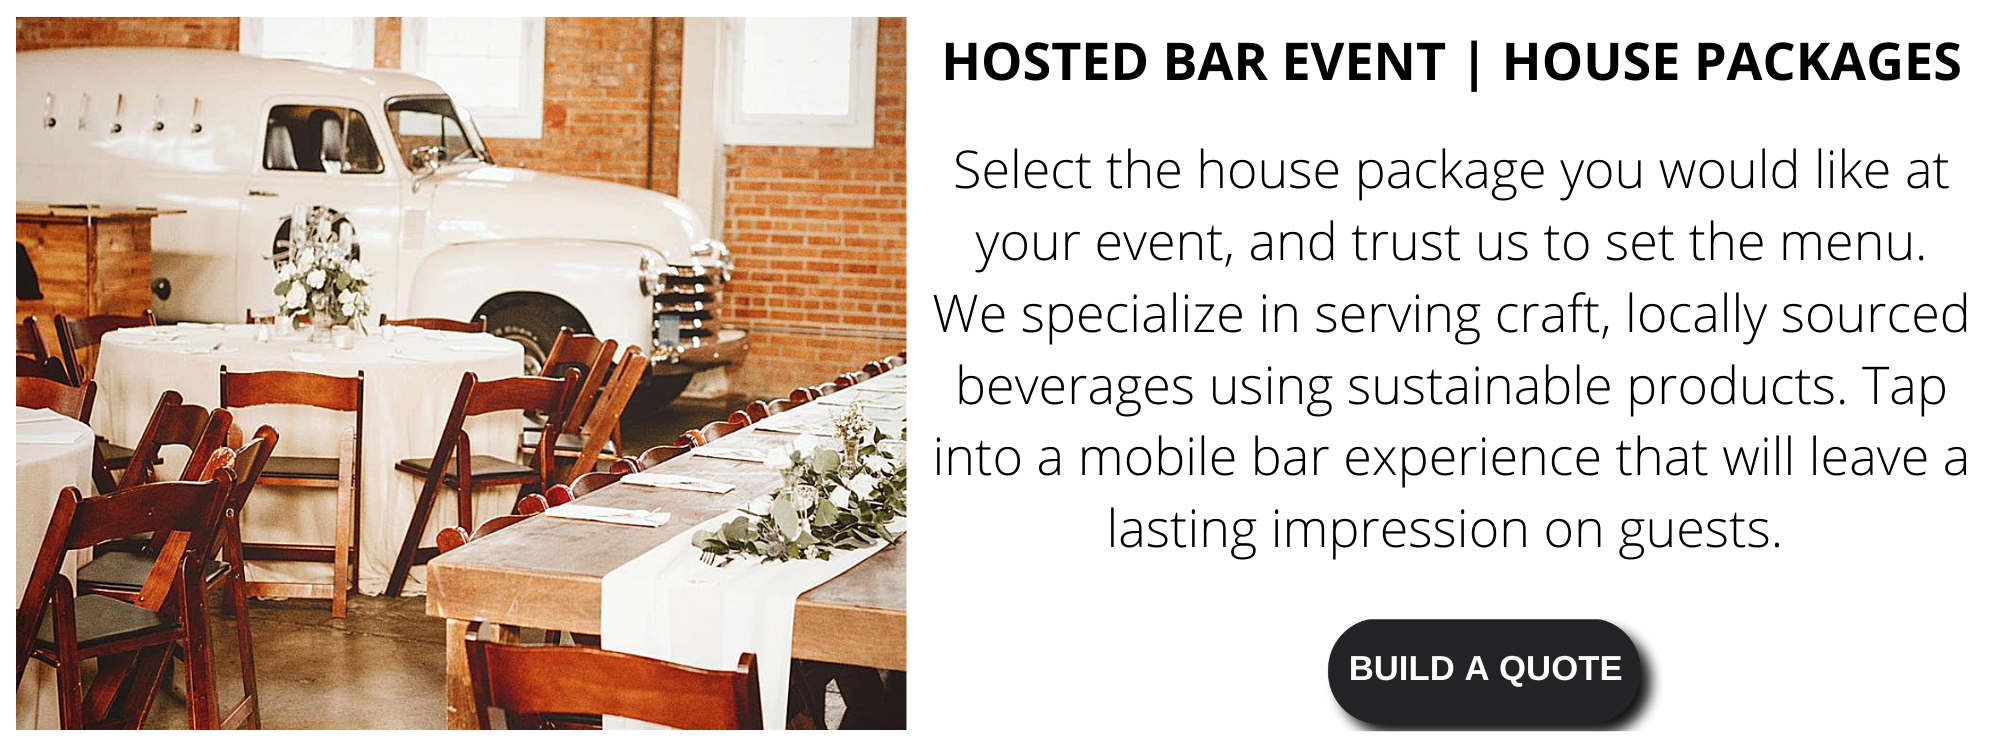 Tap Truck Beach Cities offers hosted bar house packages for you to choose from.